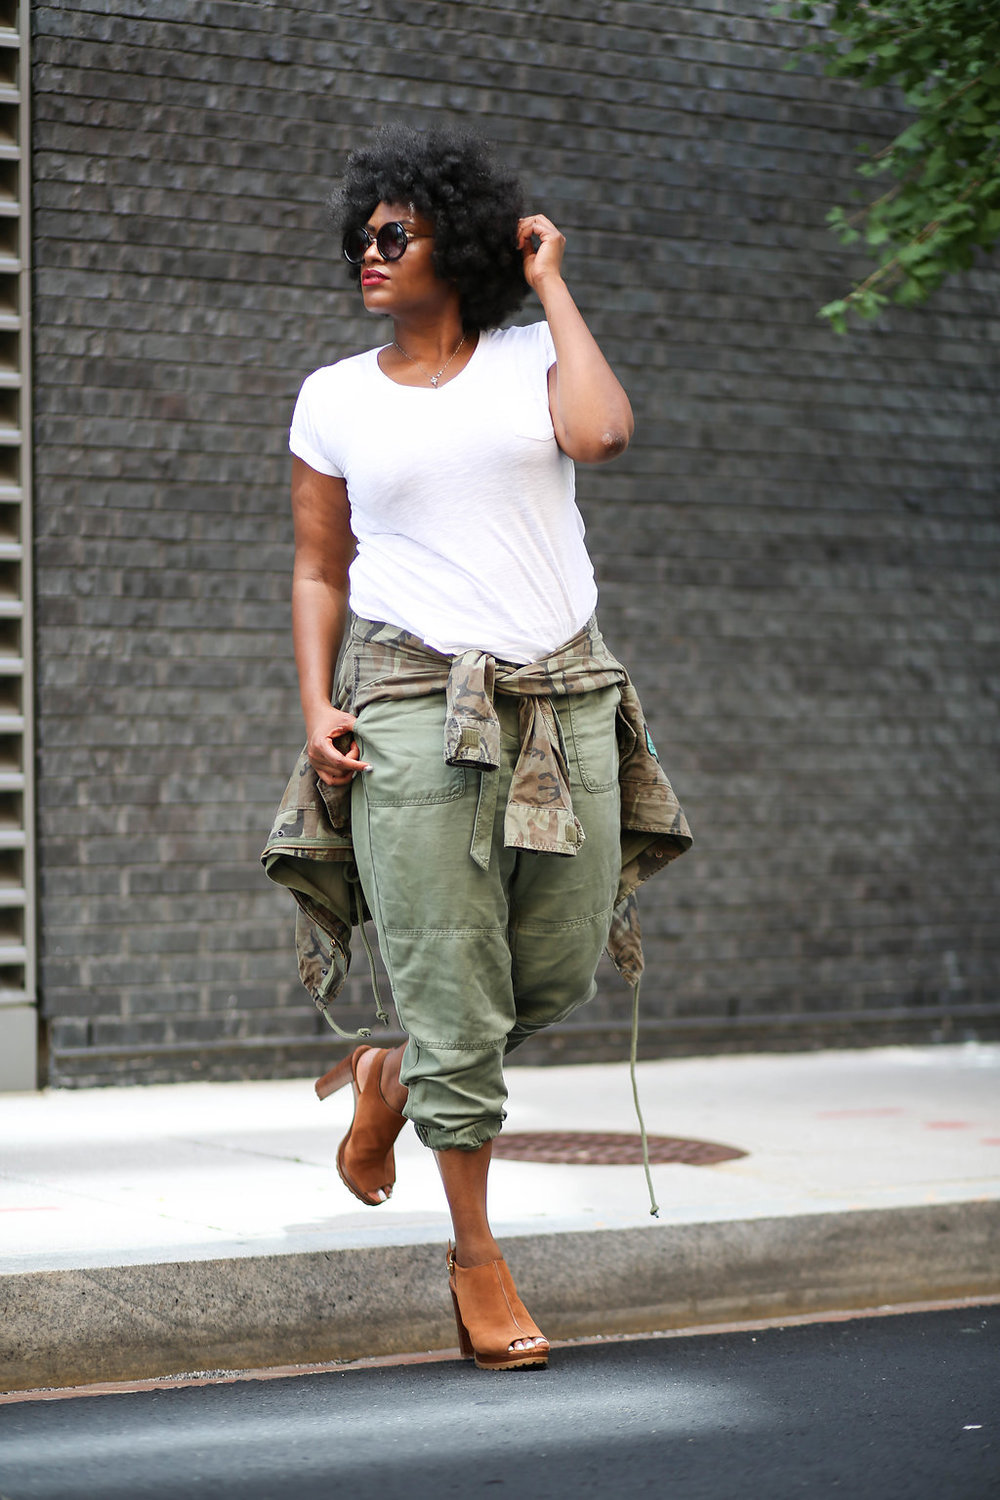 Top Washington, DC Style blogger + natural hair